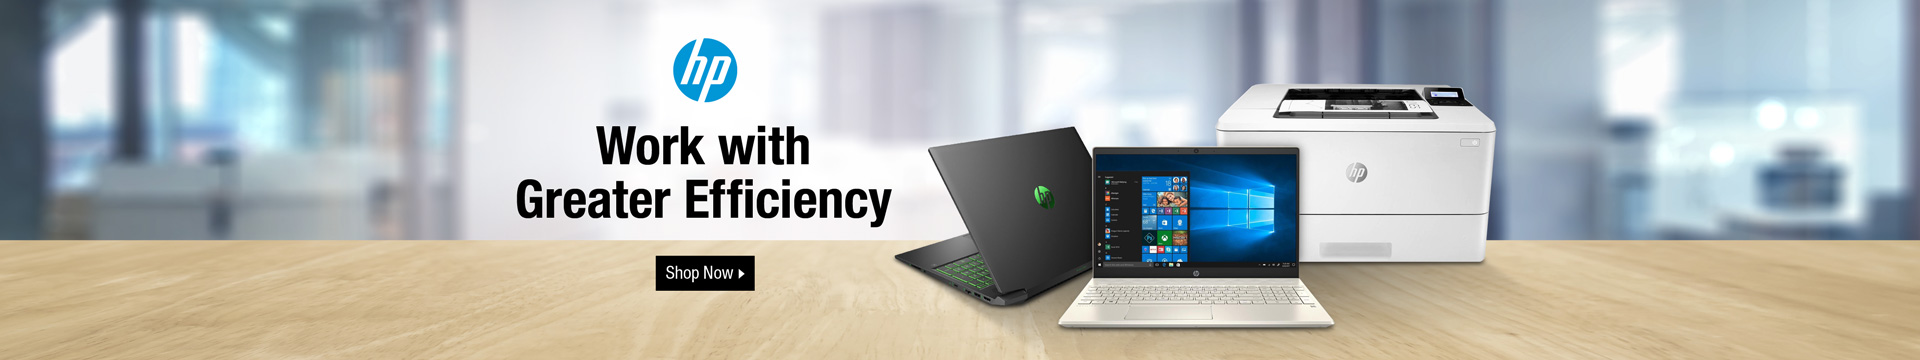 Work with greater efficiency